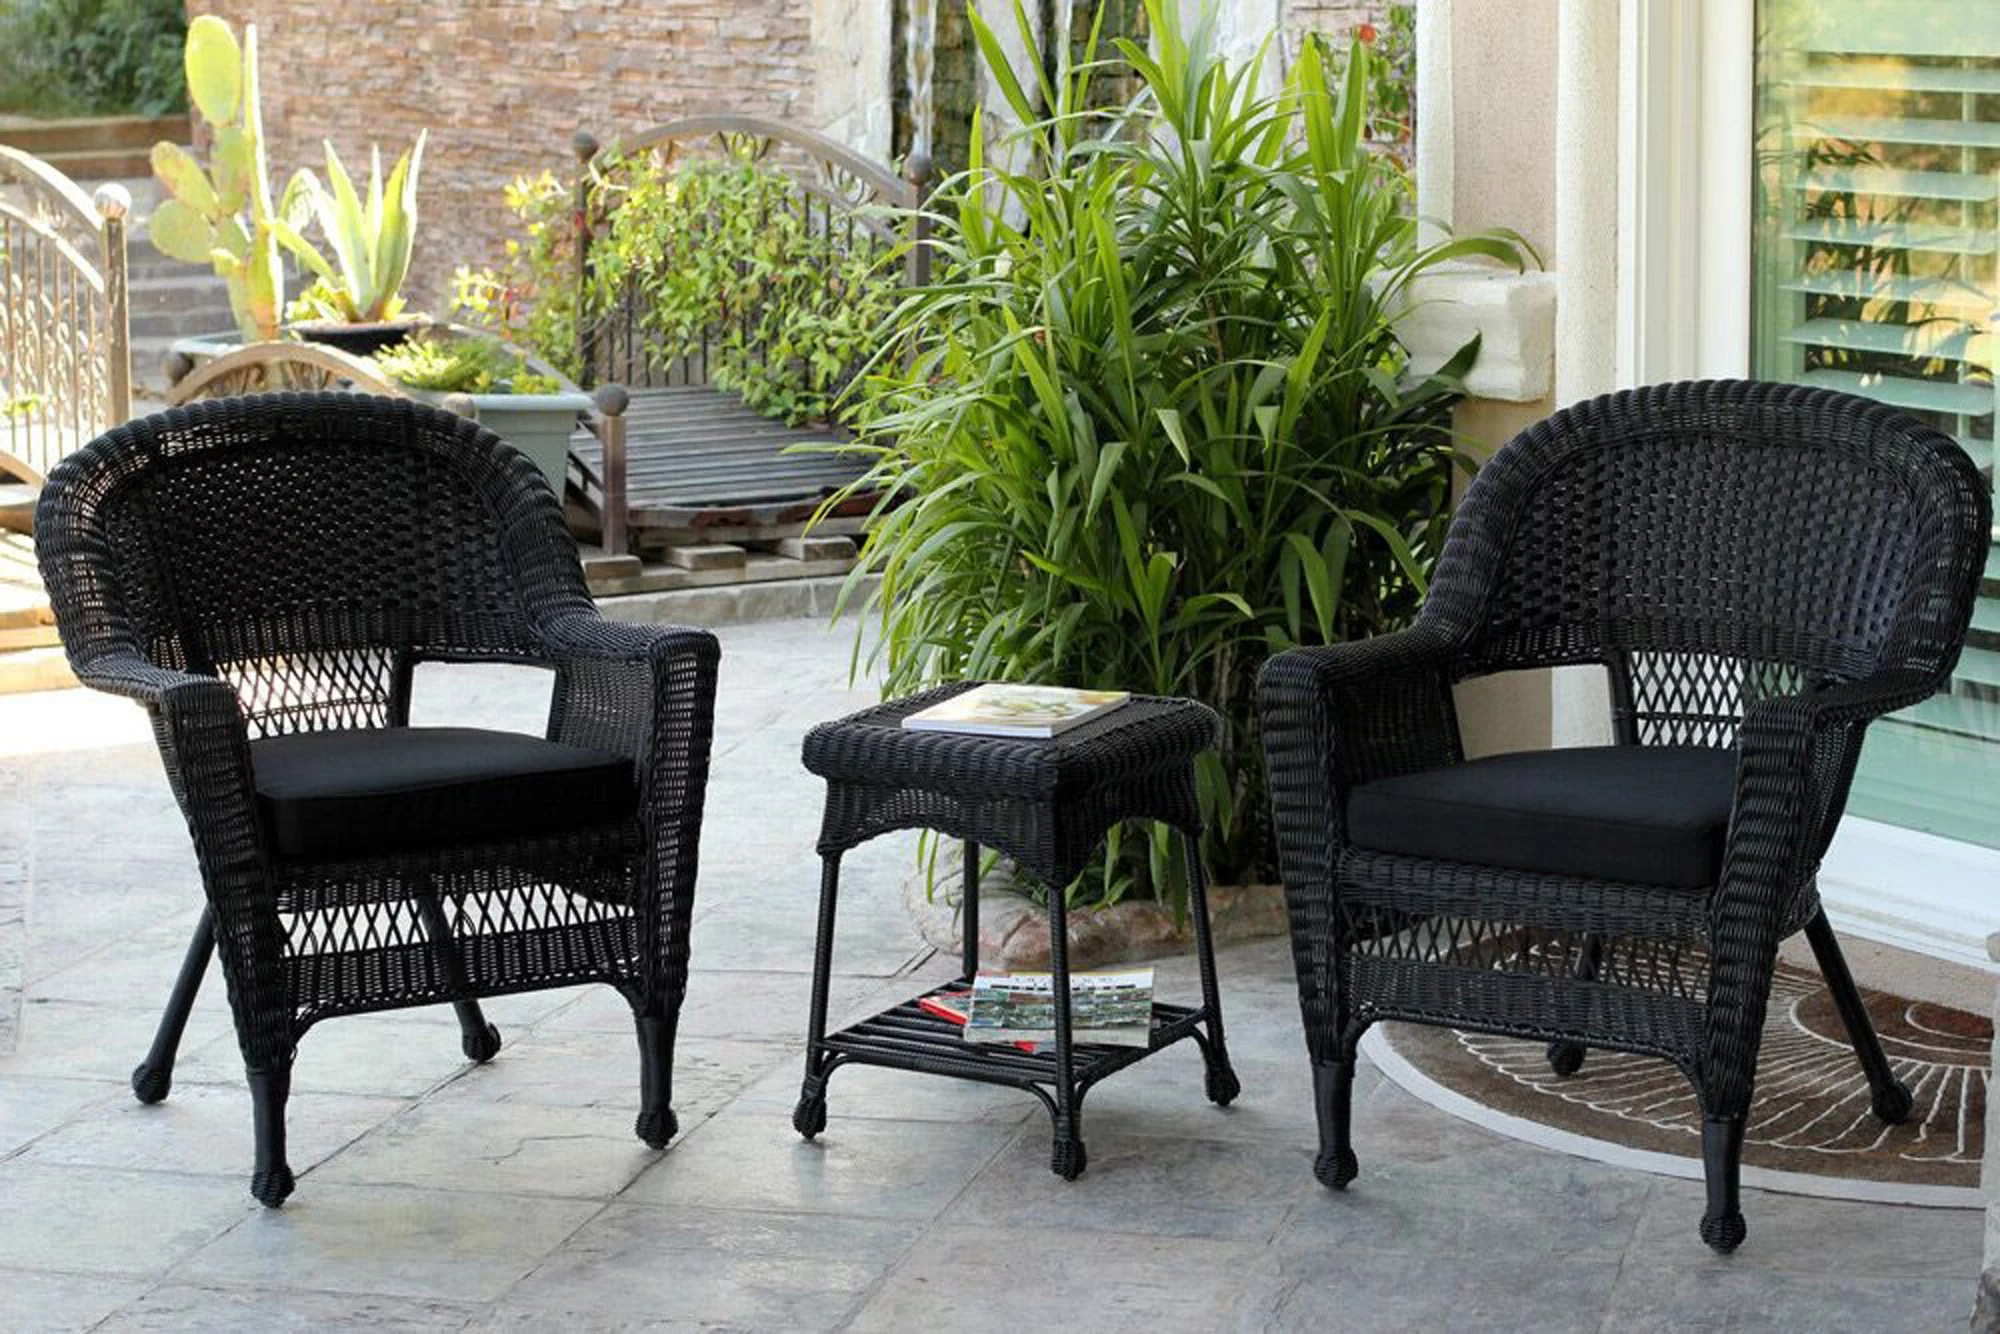 3 piece black resin wicker patio chairs and end table furniture set black cushions walmart com